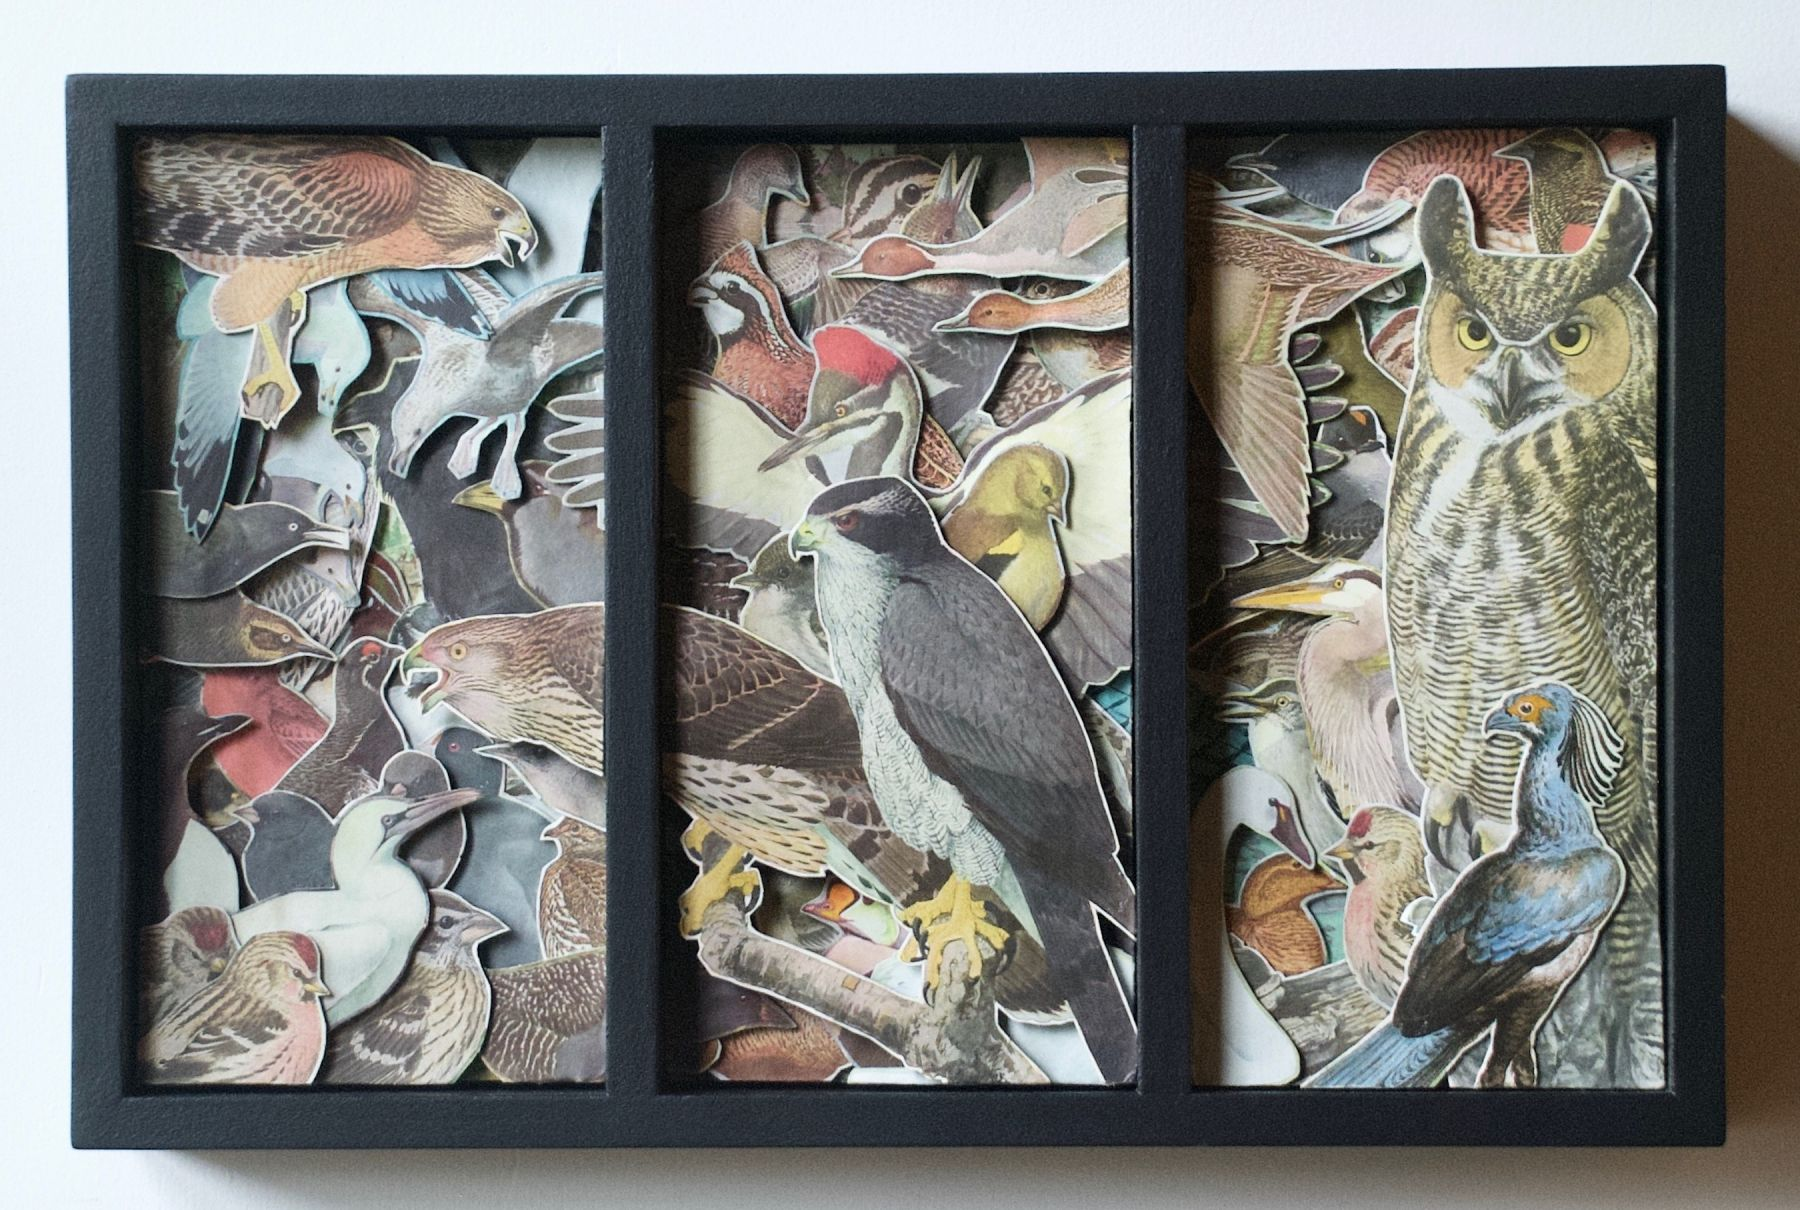 TONY DAGRADI, The Birds (1936), 2018